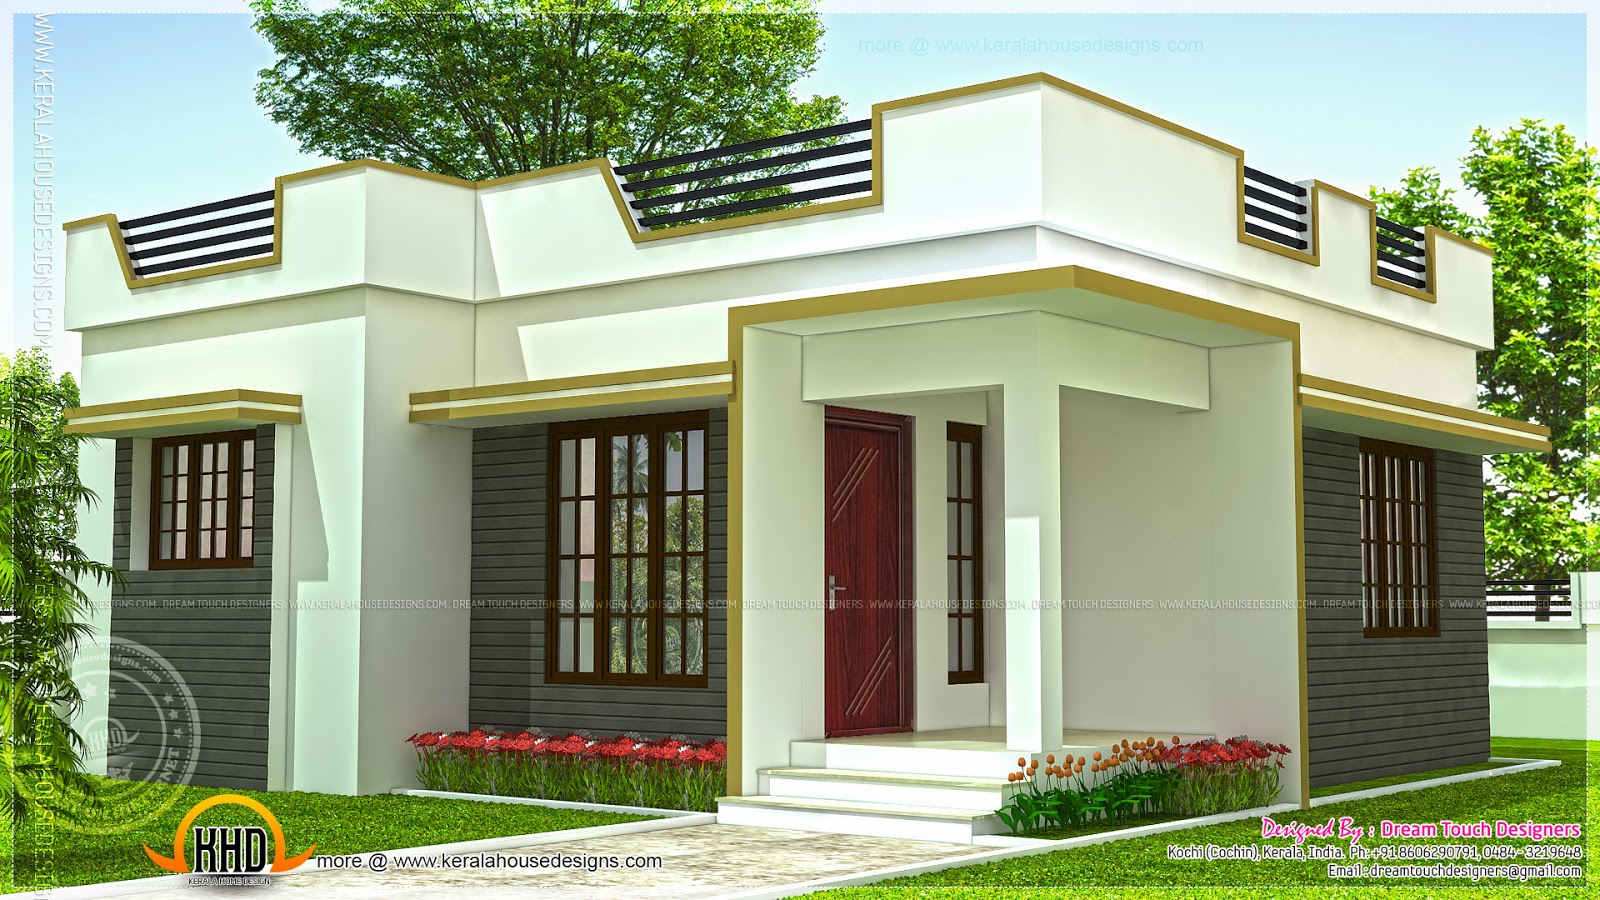 Kerala small house plans joy studio design gallery for Small home design in kerala